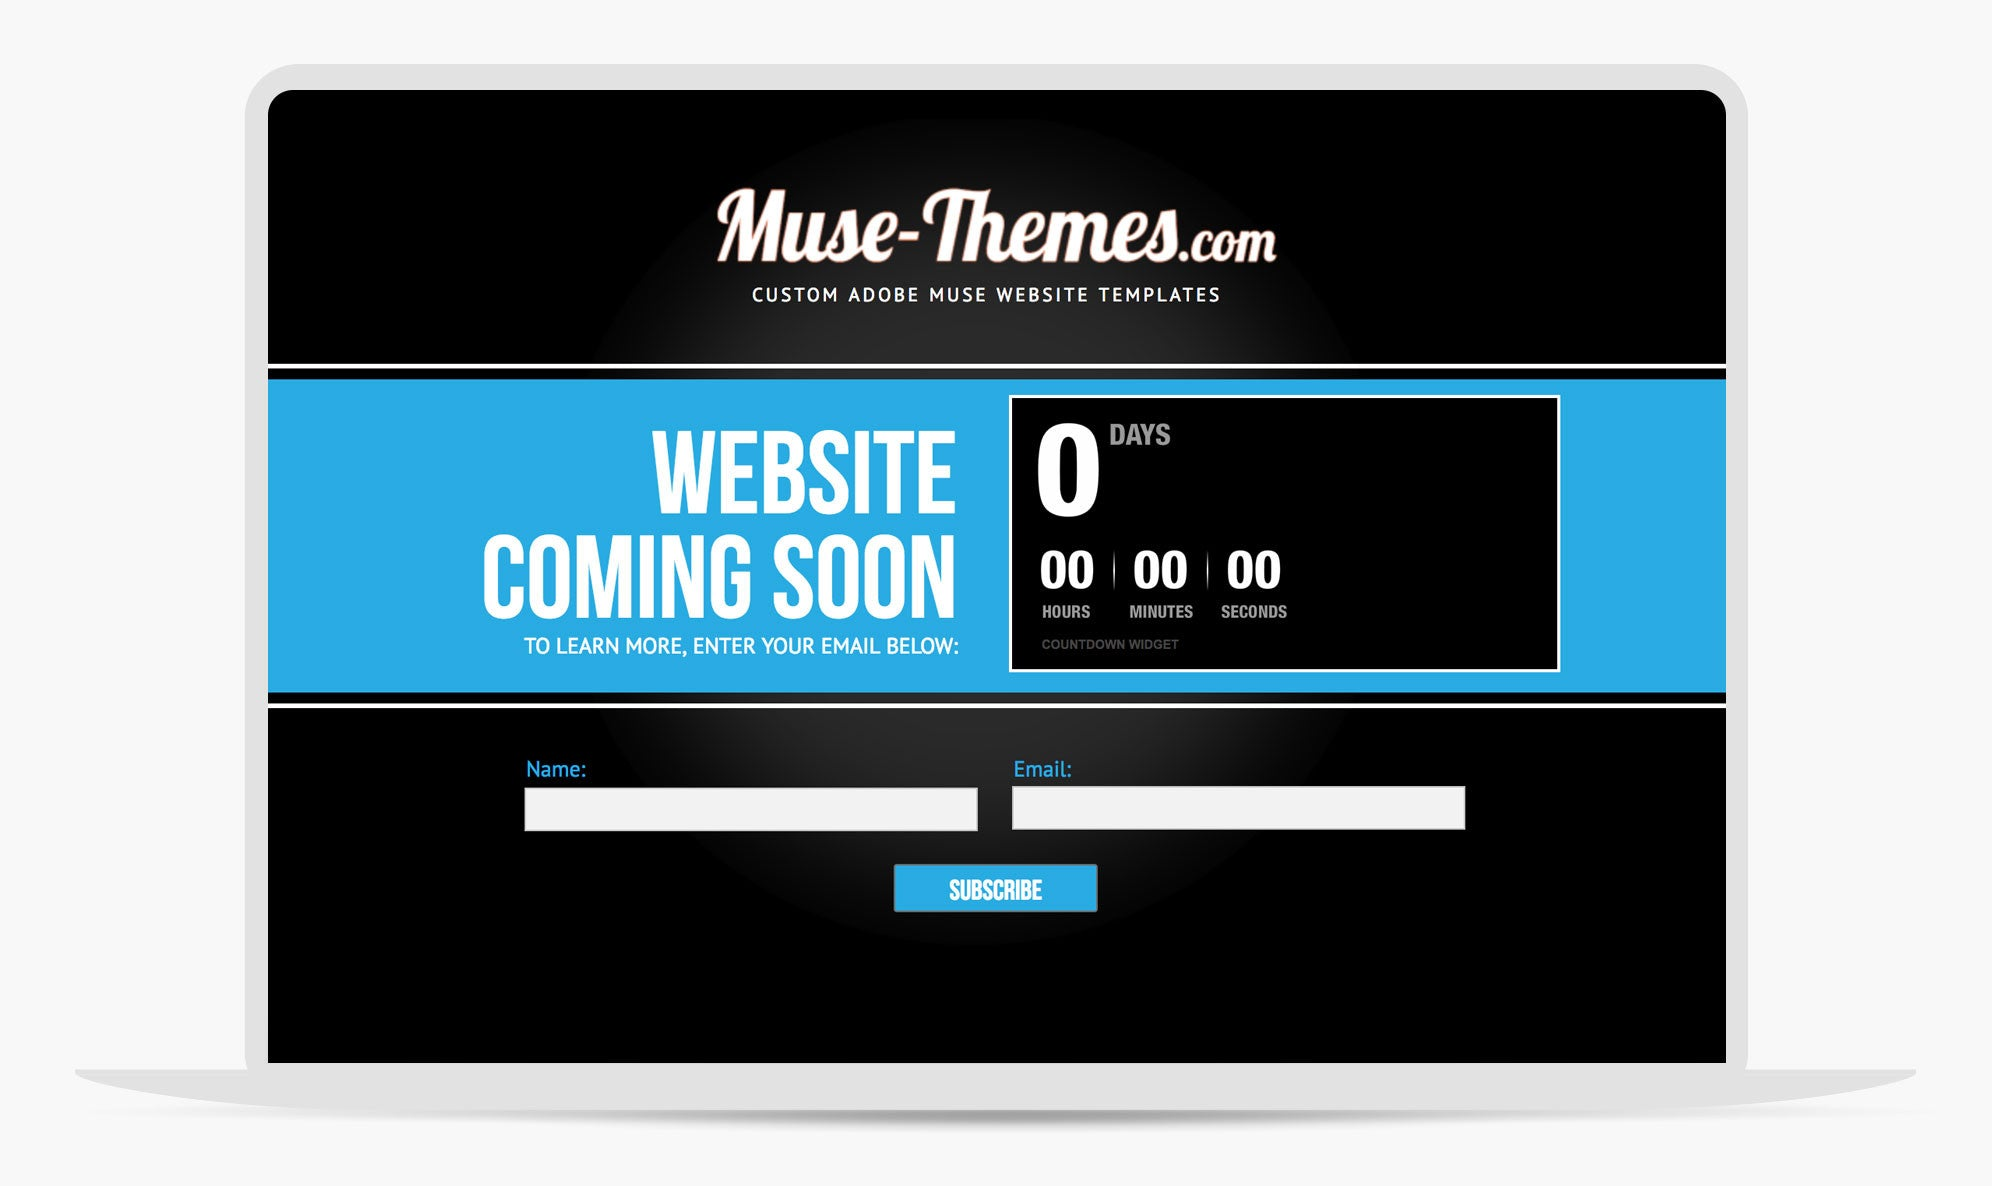 Muse Website Theme Coming Soon Page For Adobe Muse - Adobe muse website templates